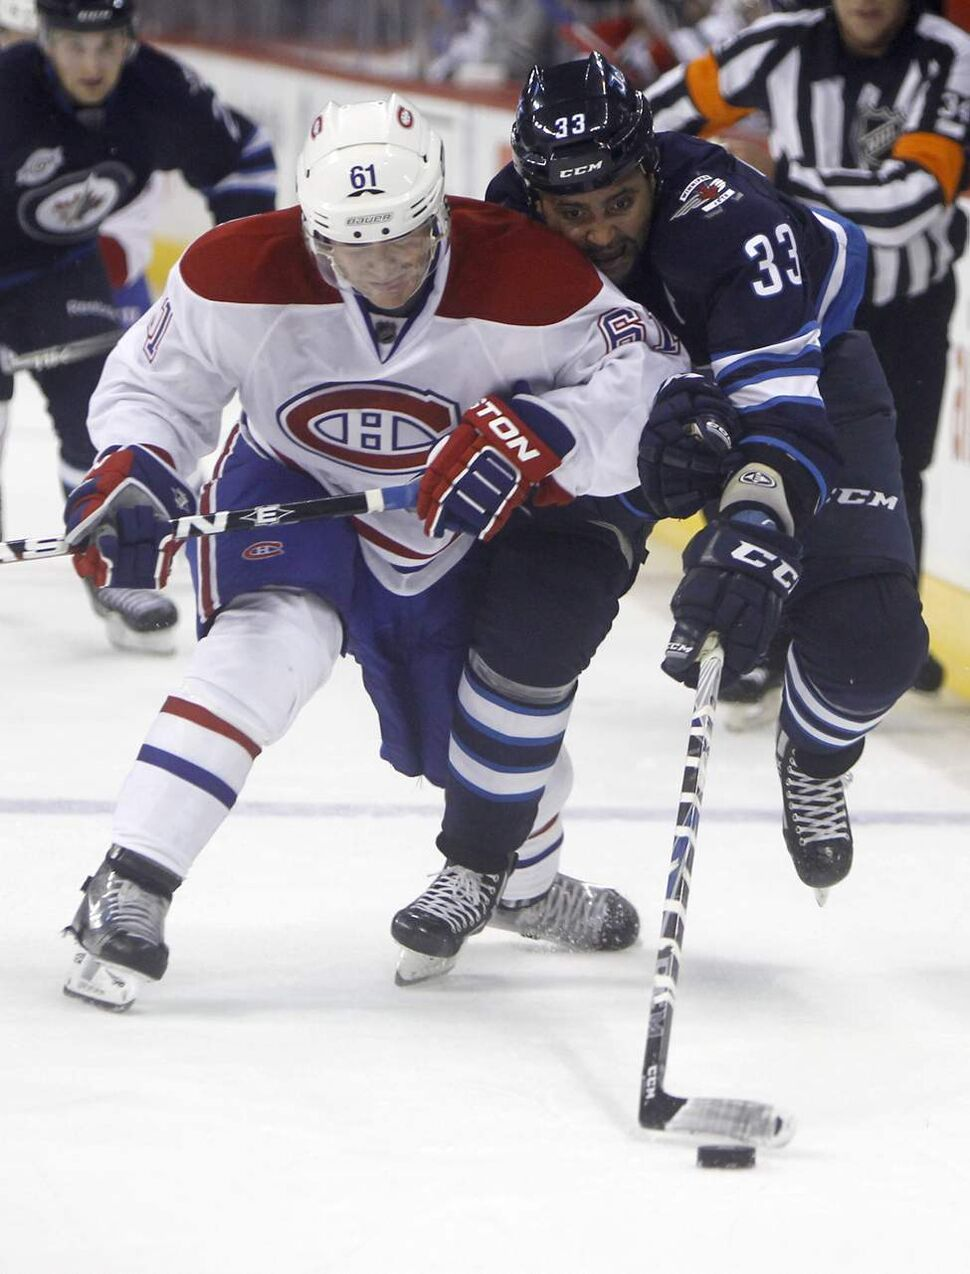 Winnipeg Jets' Dustin Byfuglien battles for the puck with Canadien Raphael Diaz during second-period action in the NHL regular season home opener Sunday, October 9, 2011 at the MTS Centre. (Trevor Hagan / Winnipeg Free Press)